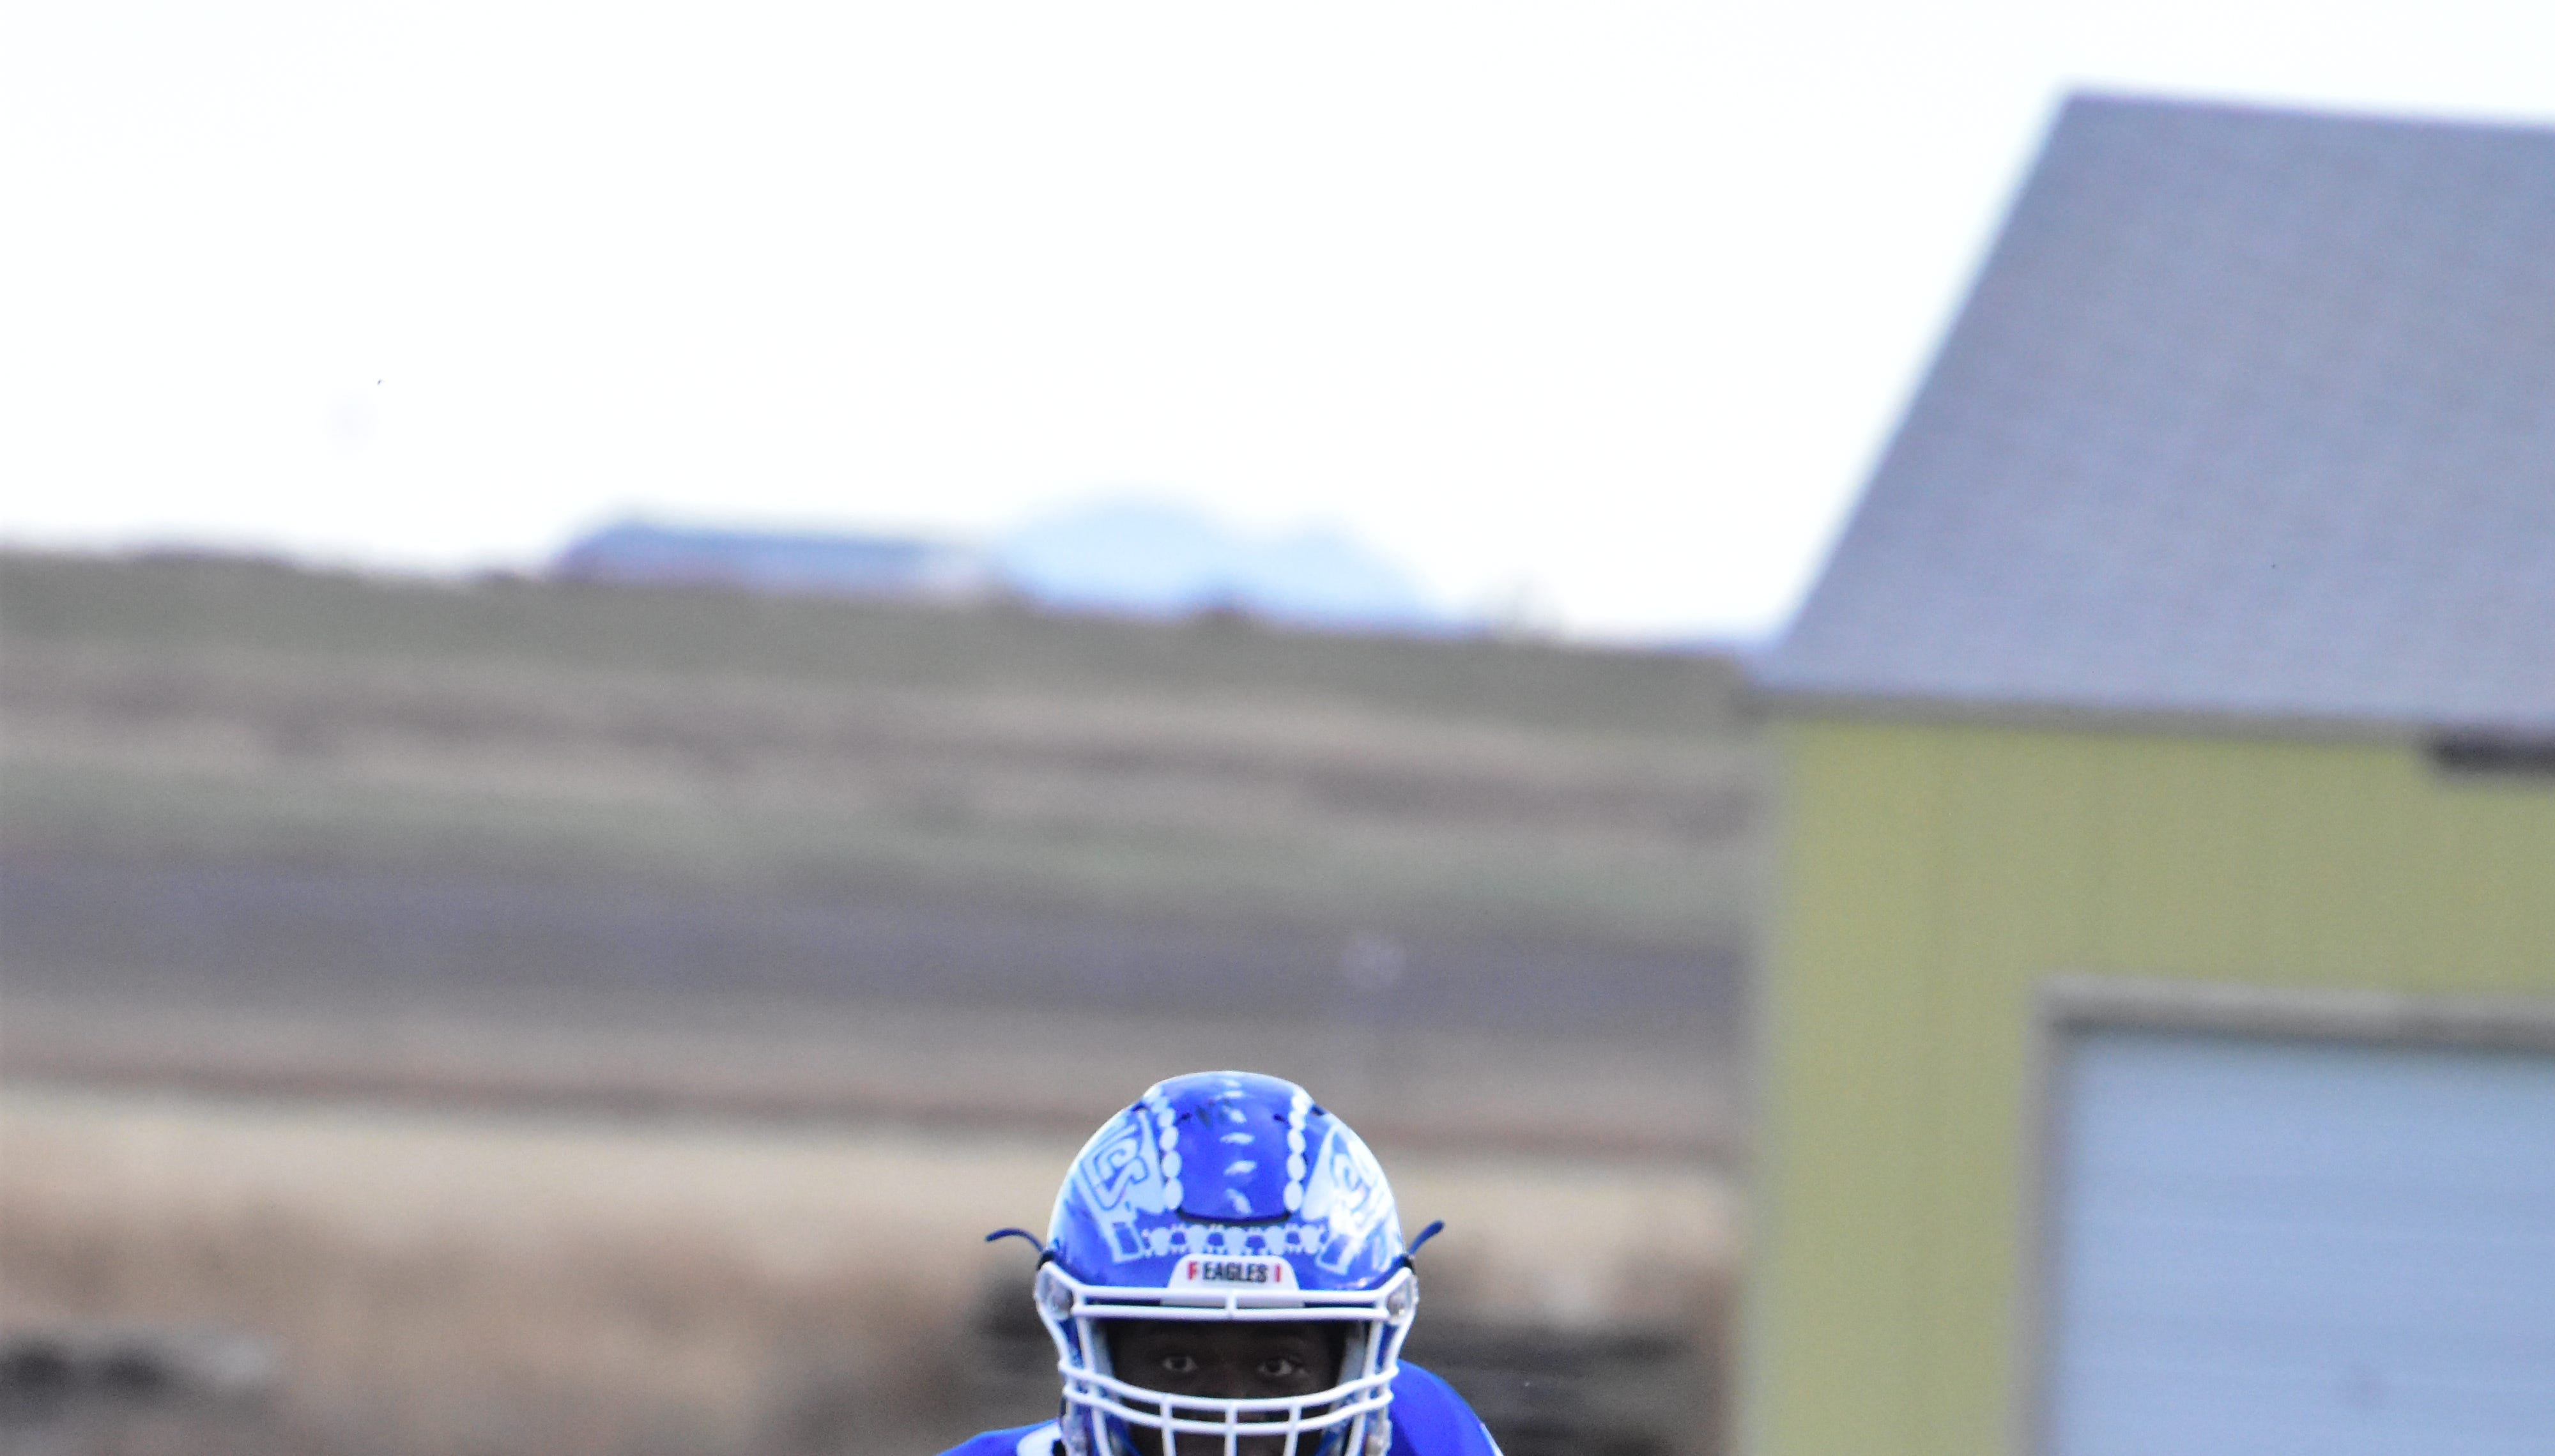 The Fairfield Eagles travel to Missoula to face Loyola Sacred Heart in the 46th Class B State Football Championship game Saturday.